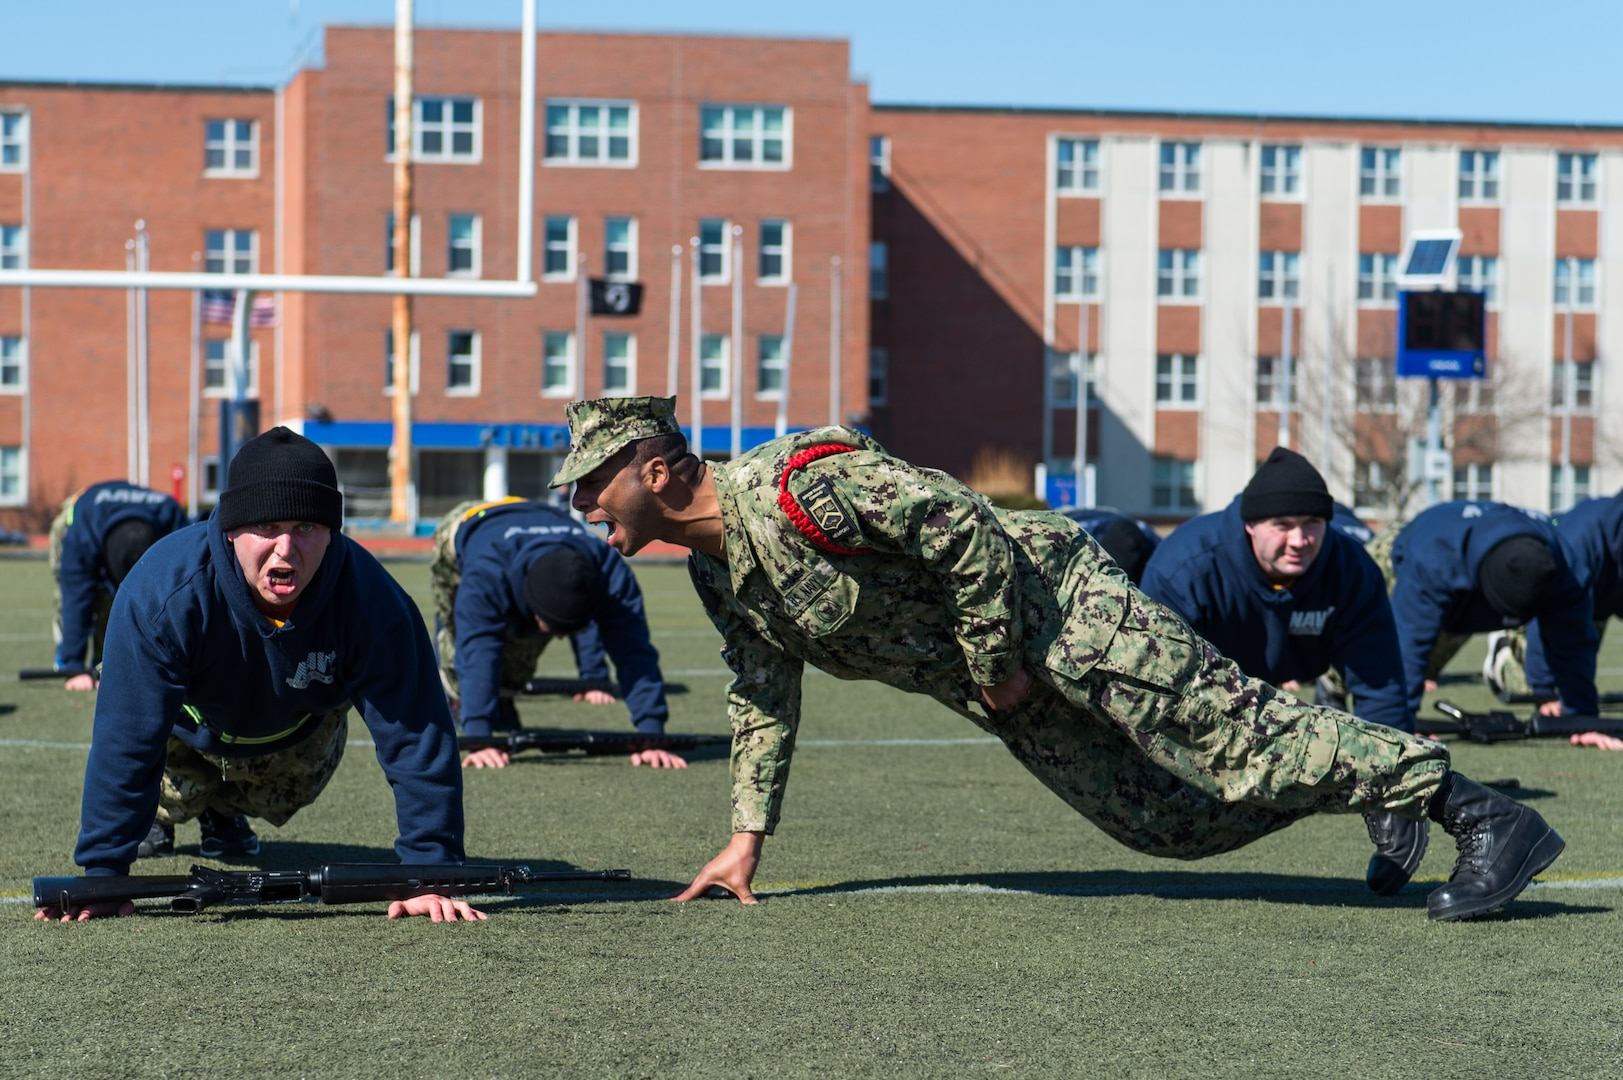 Recruit division commander assigned to Officer Training Command Newport, in Newport, Rhode Island, corrects Officer Candidate School student's form during remedial physical training, March 9, 2020 (U.S. Navy/Darwin Lam)